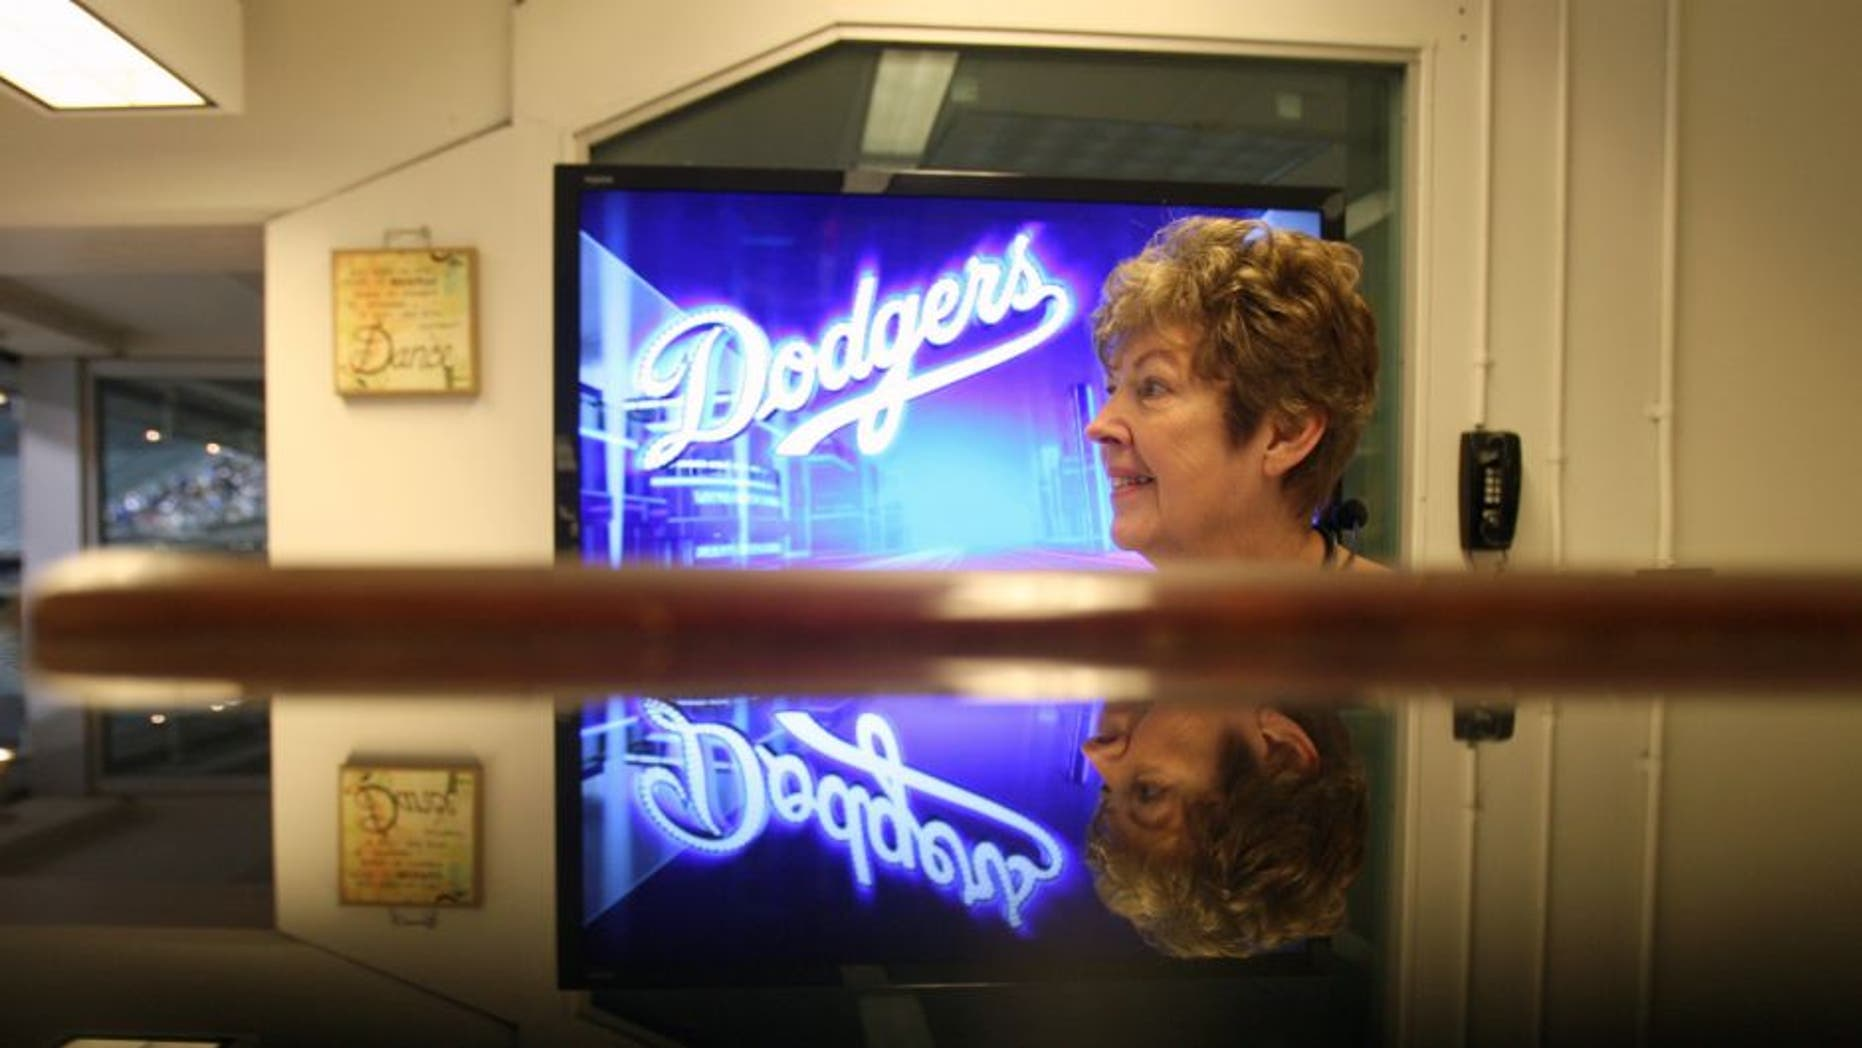 7:38pm April 4: Organist Nancy Bea Hefley watches the game for musical cues during the Dodgers– Angels exhibition Freeway Series game. Hefley has been playing since the late 1980s alongside announcers Rick Monday and Vin Scully and became one of the crowd favorites at Dodger Stadium. She plays popular pop and rock songs as well as older and less commonly played numbers. (Photo by Allen J. Schaben/Los Angeles Times via Getty Images)